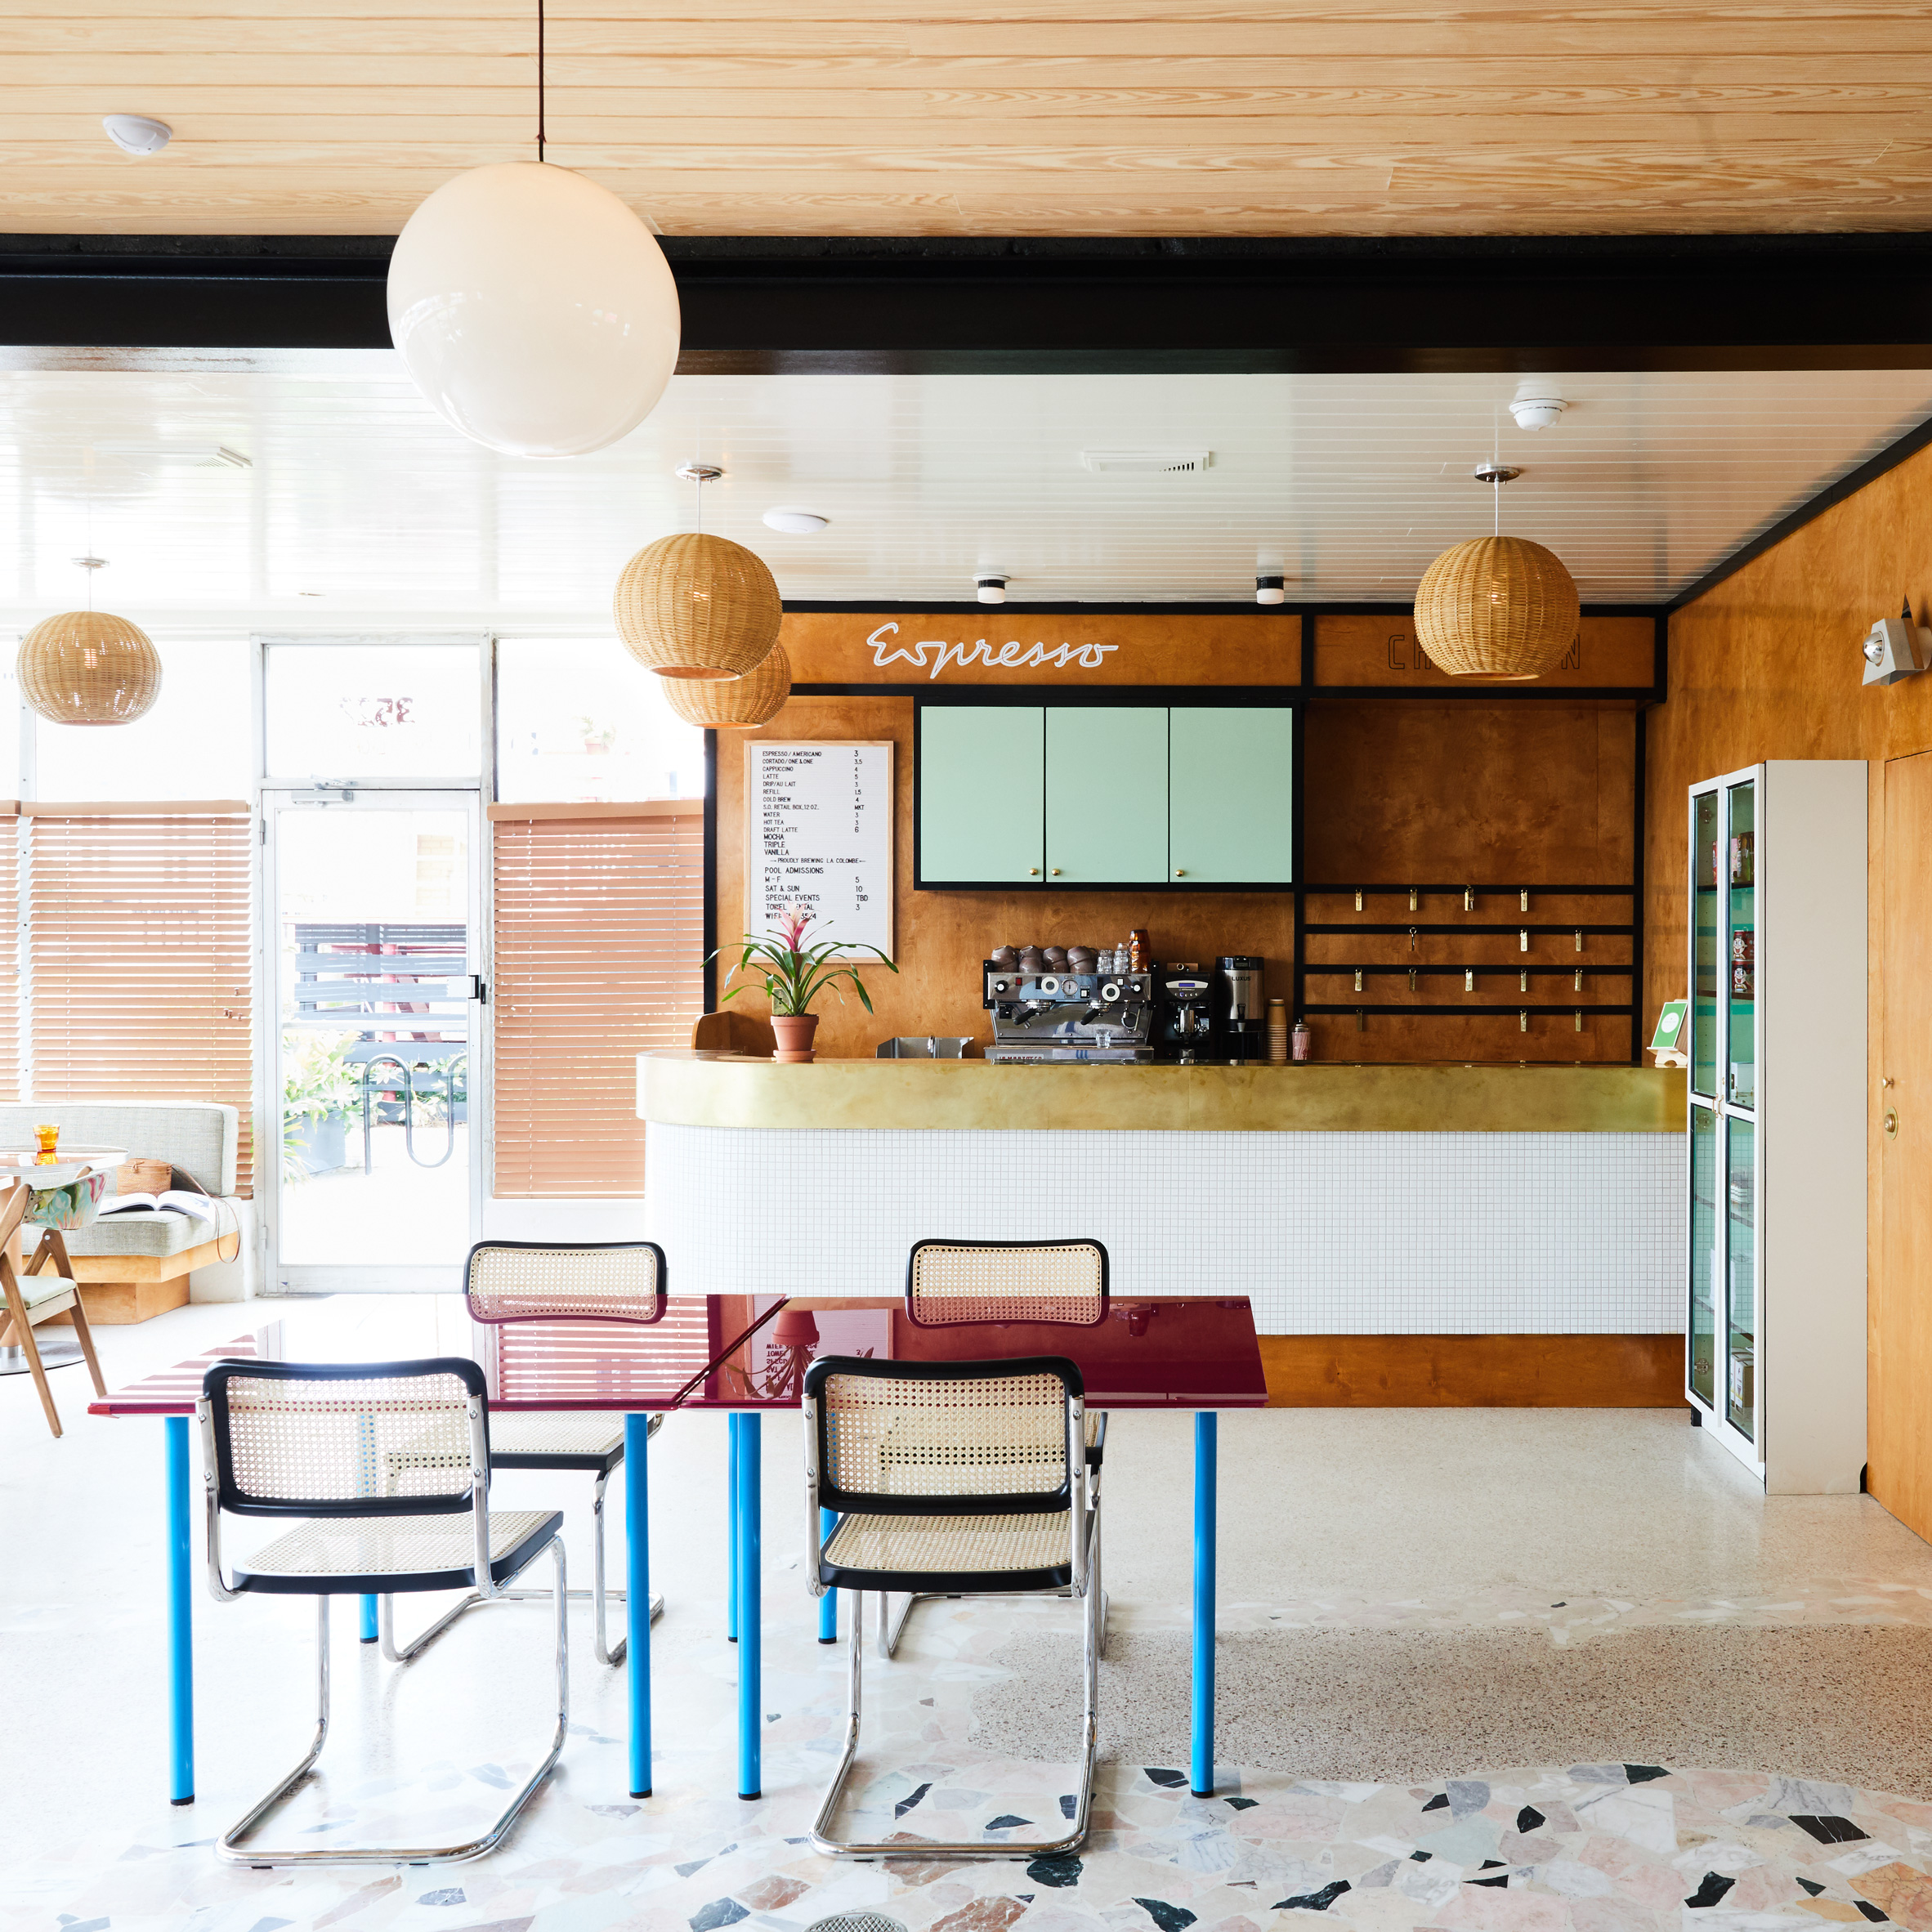 The Drifter Hotel occupies 1950s New Orleans motel renovated by Nicole Cota  Studio